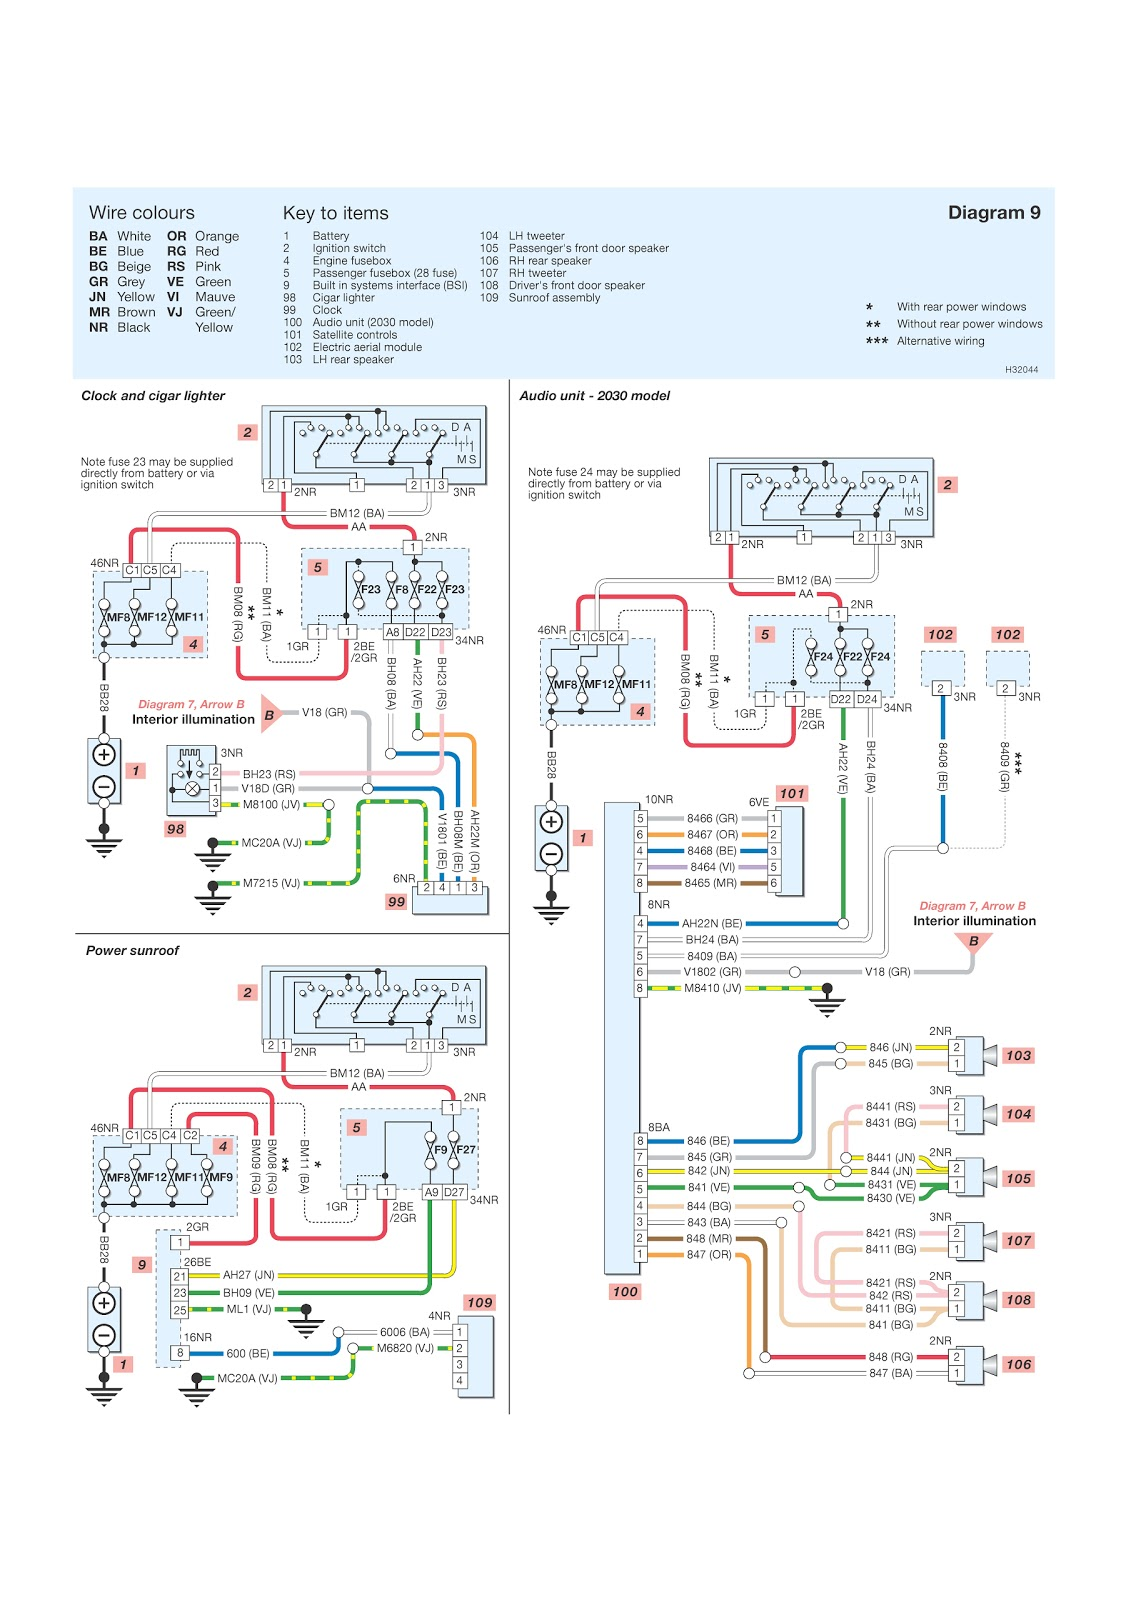 Wiring Diagram Peugeot 206 : Peugeot system wiring diagrams clock cigar lighter